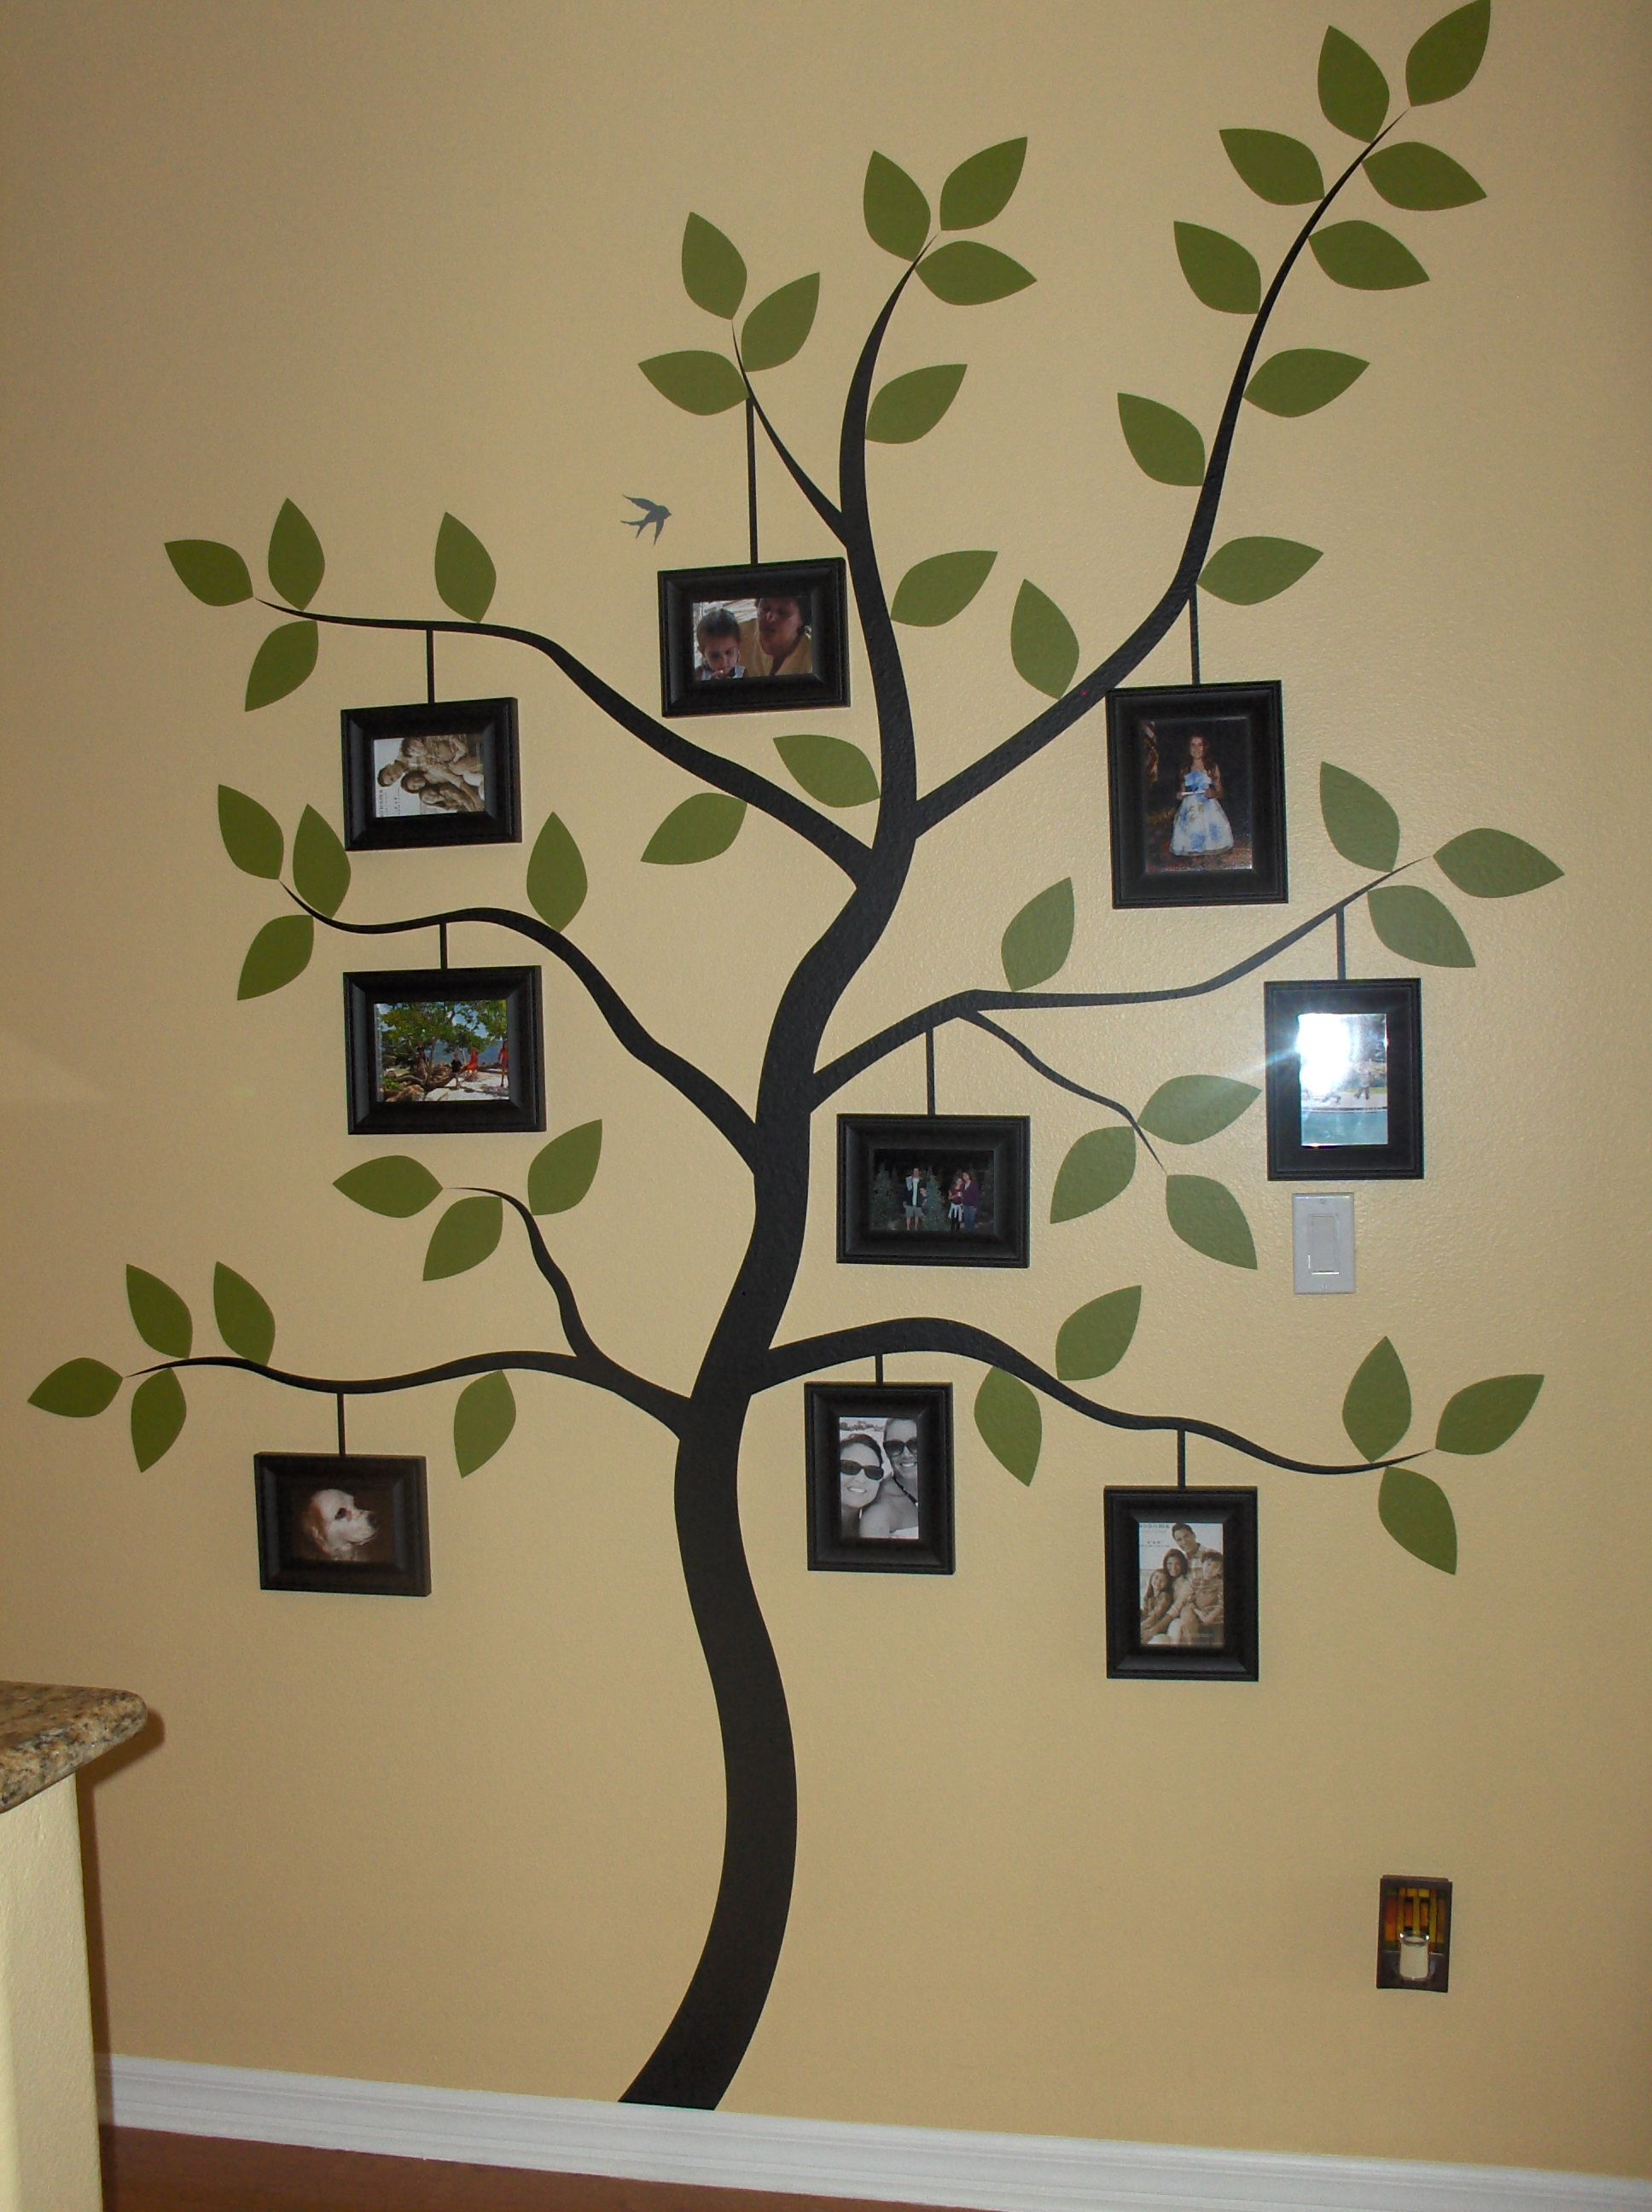 Family Tree Decal Was So Easy To Put Up Family Tree Wall Decals - Instructions on how to put up a wall sticker